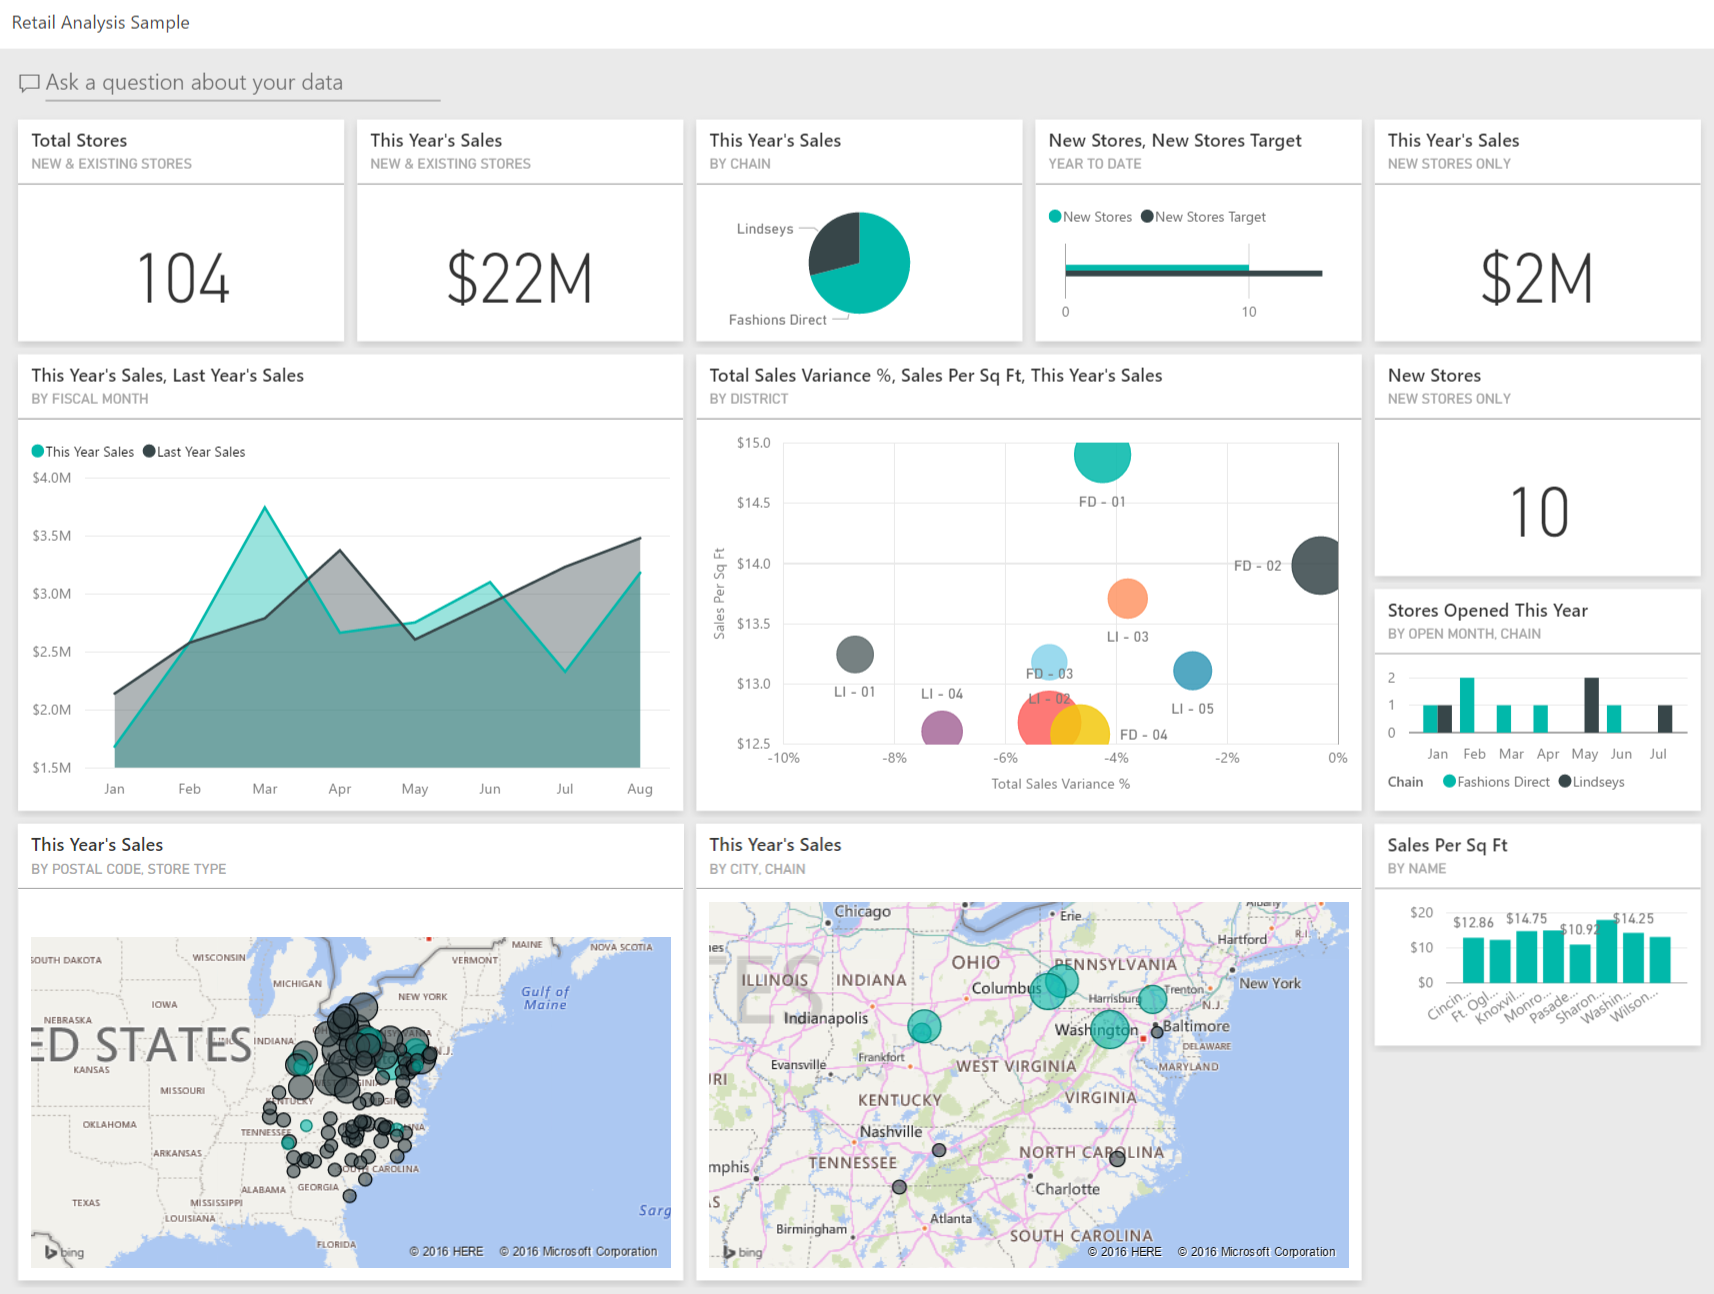 Retail Analysis sample for Power BI: Take a tour - Power BI